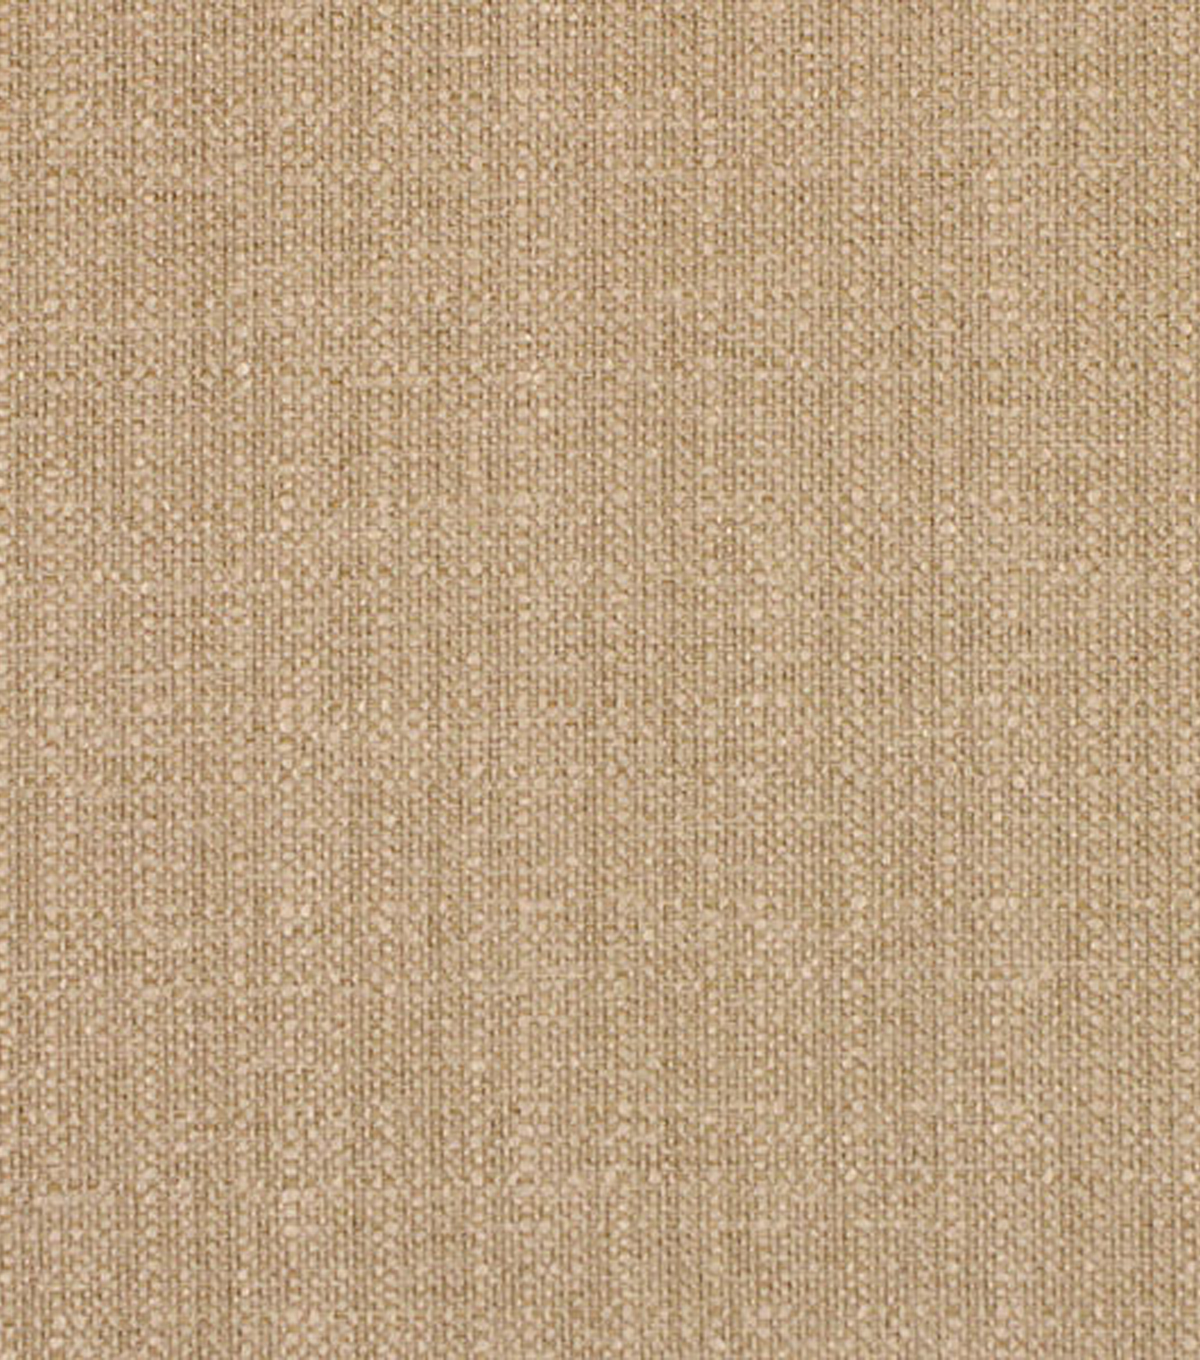 Home Decor 8\u0022x8\u0022 Fabric Swatch-Barrow  M9134-5852 Flax